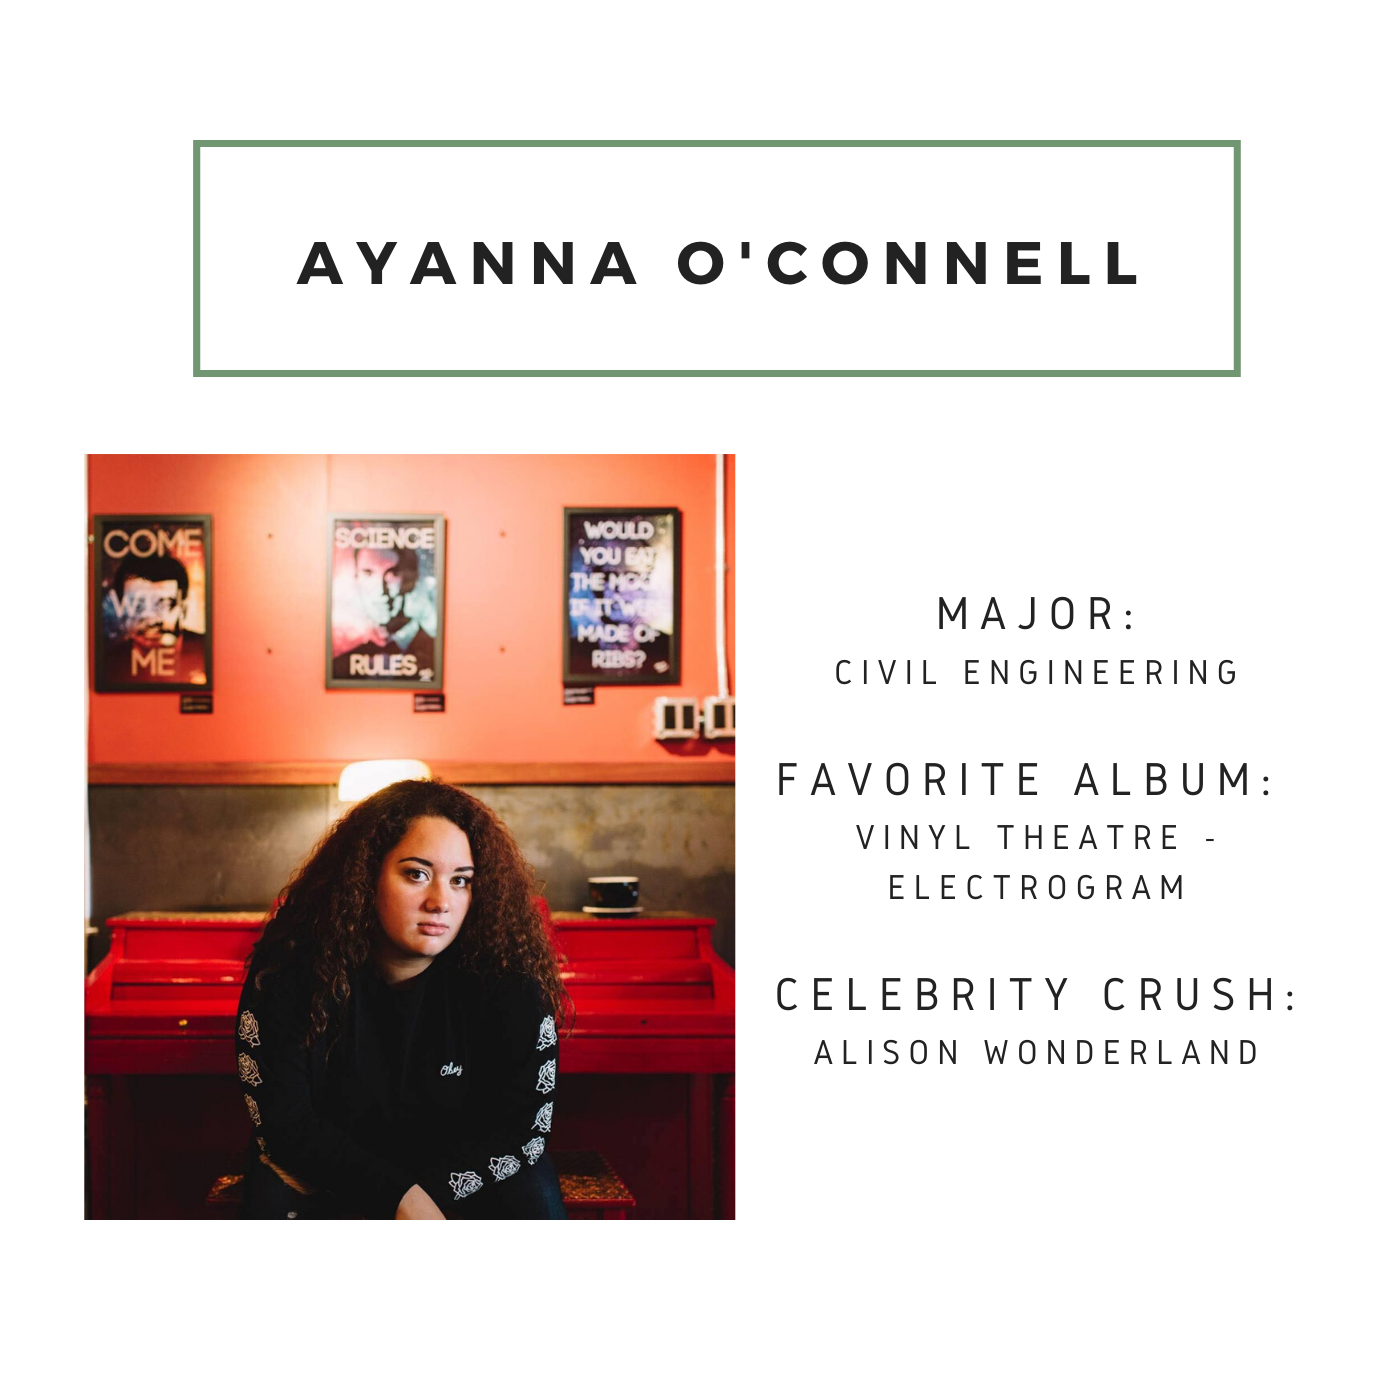 Ayanna O'Connell